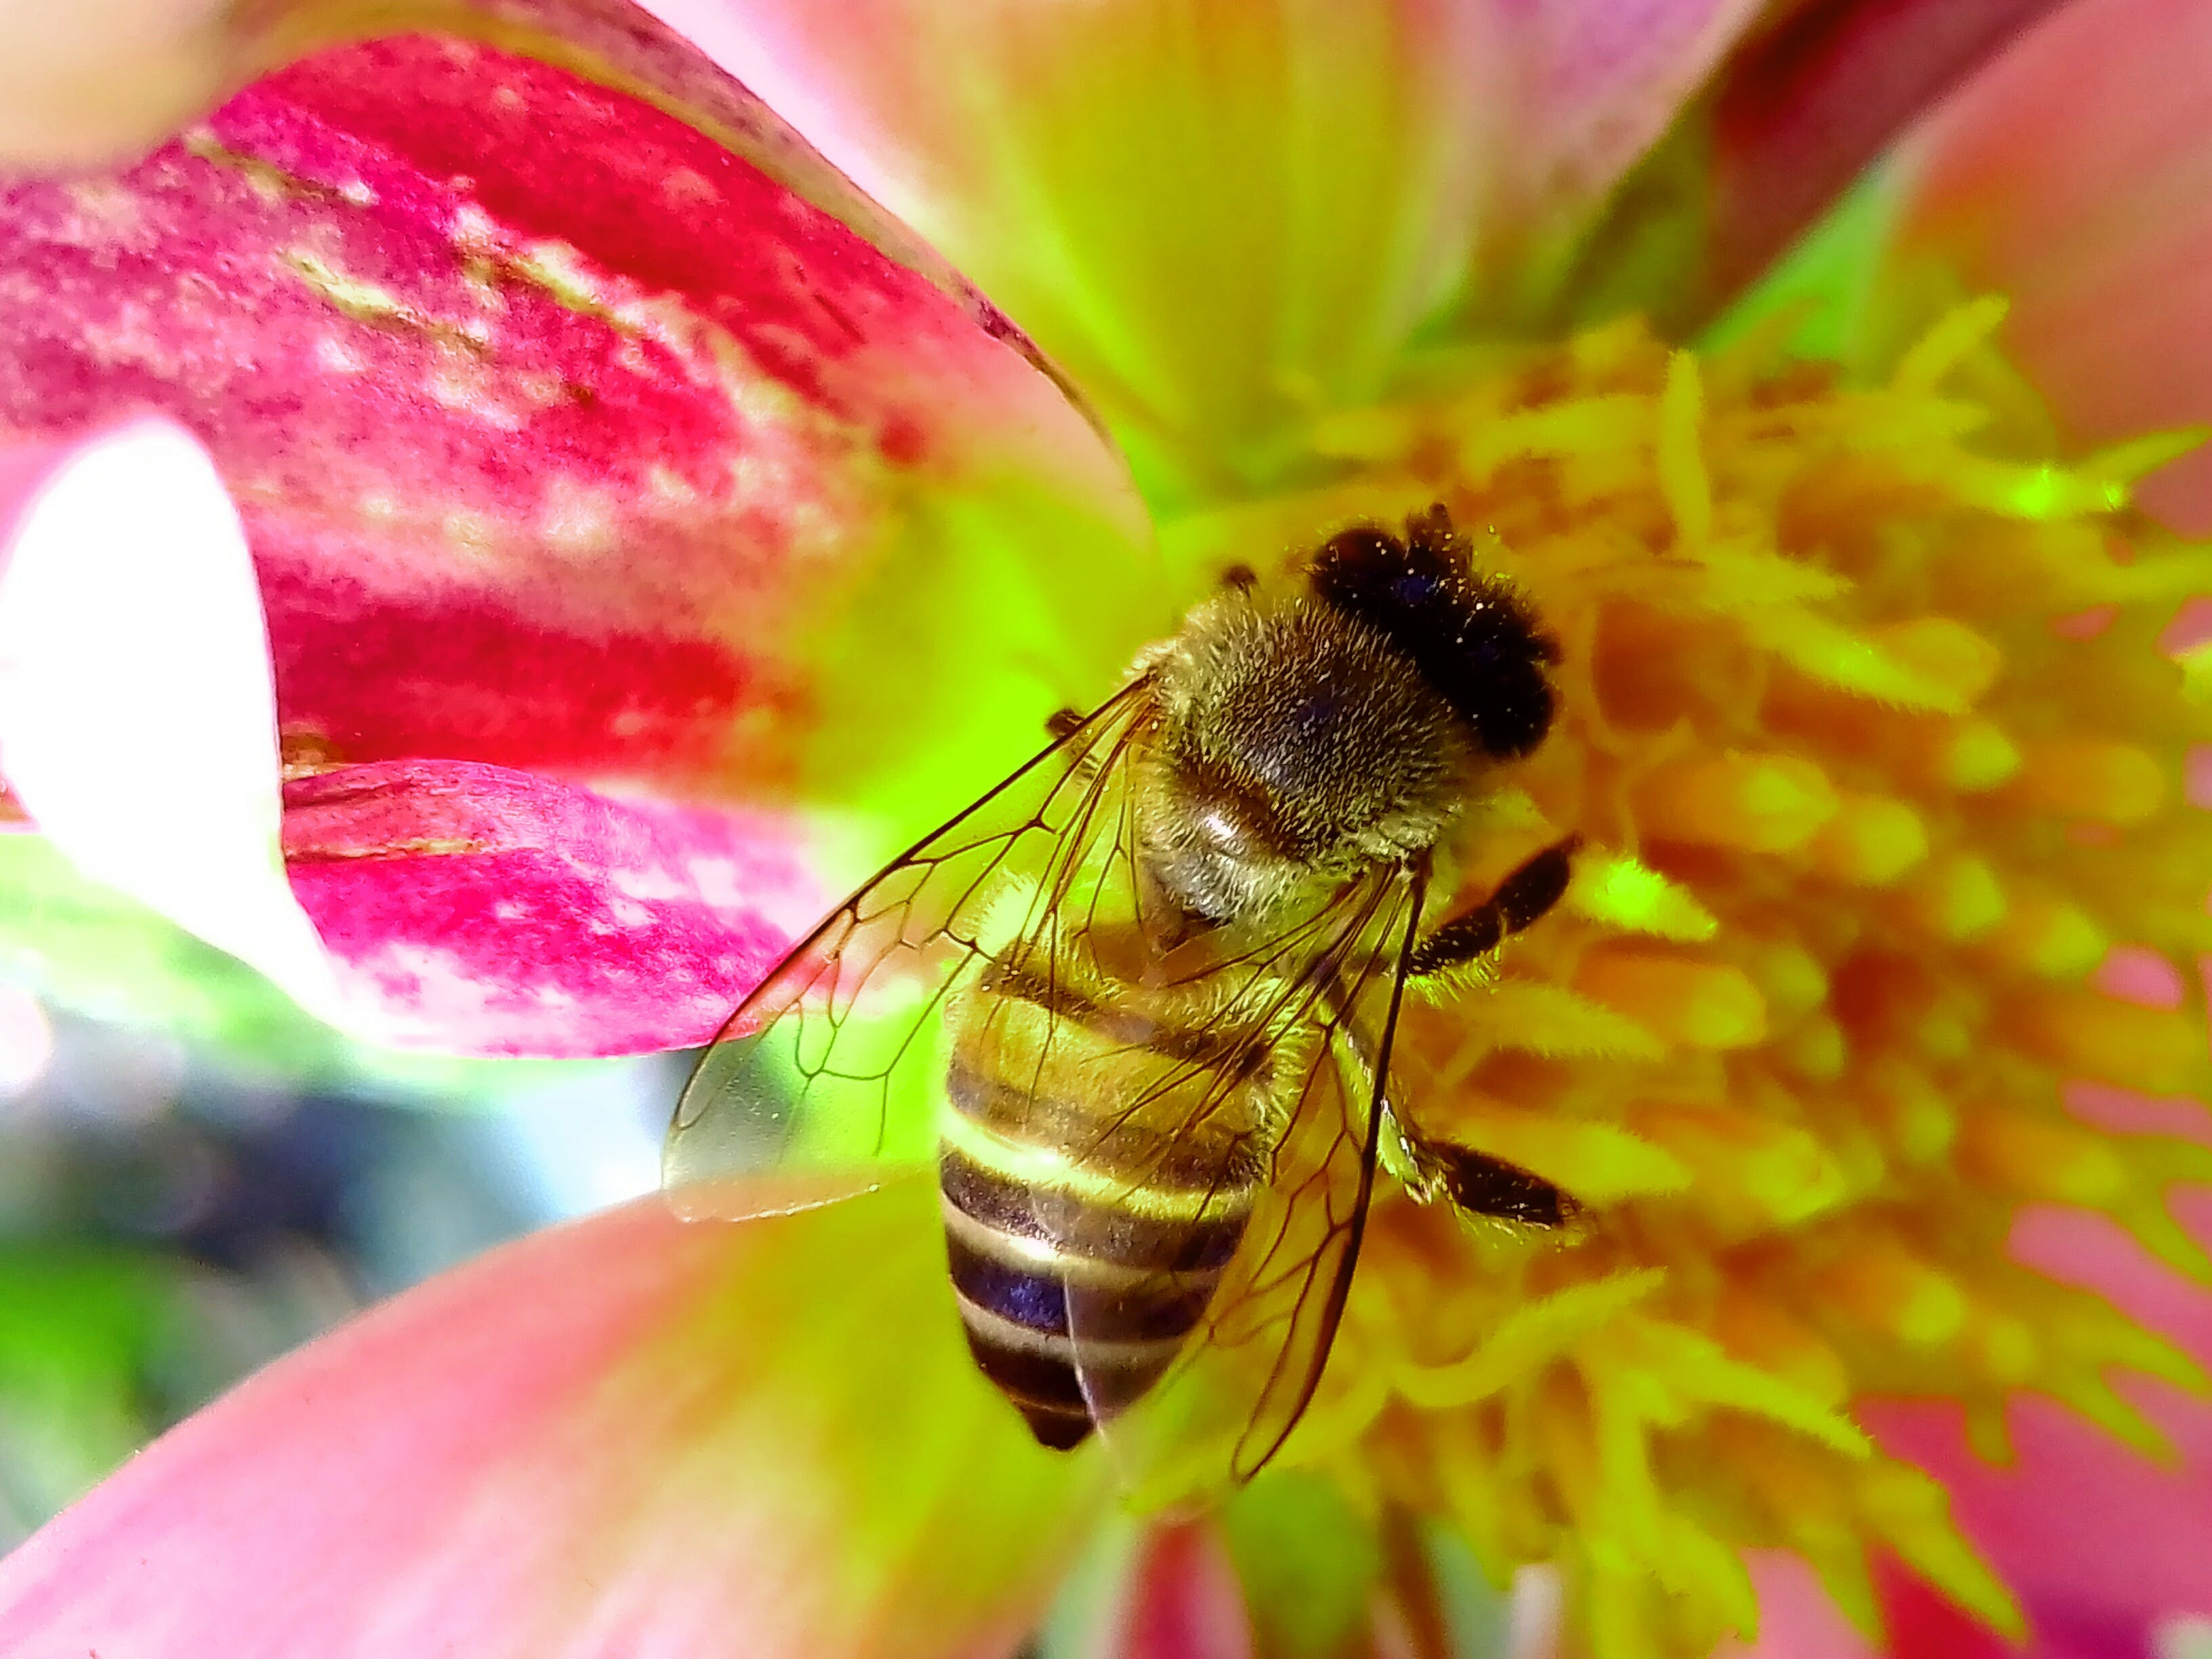 Honey Bee Perched on Pink and Yellow Petaled Flower Closeup Photography